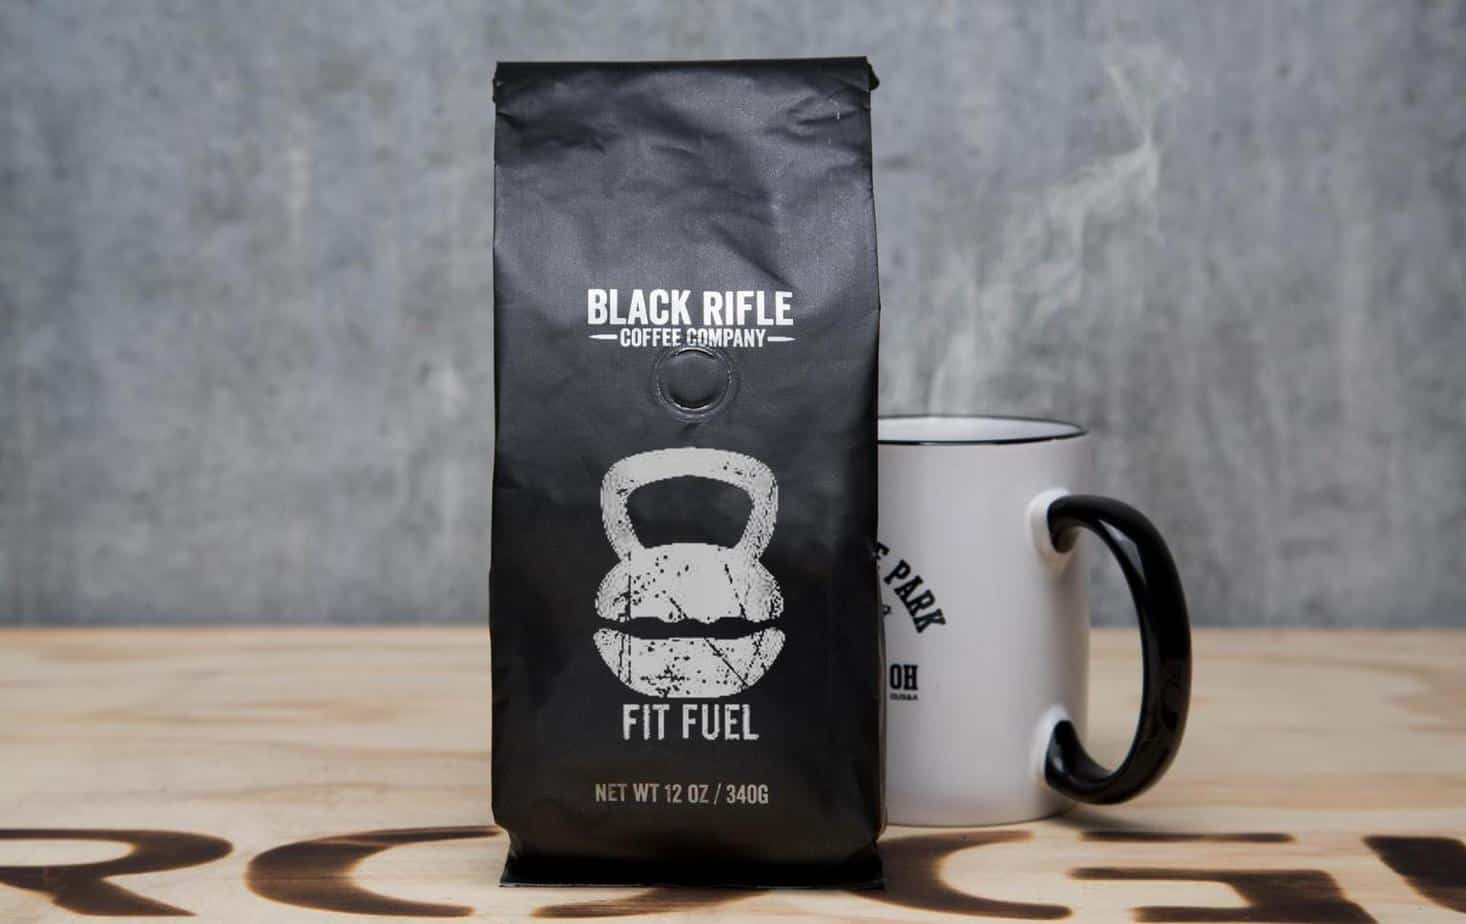 The Black Rifle Coffee Company Review: Everything You Need to Know